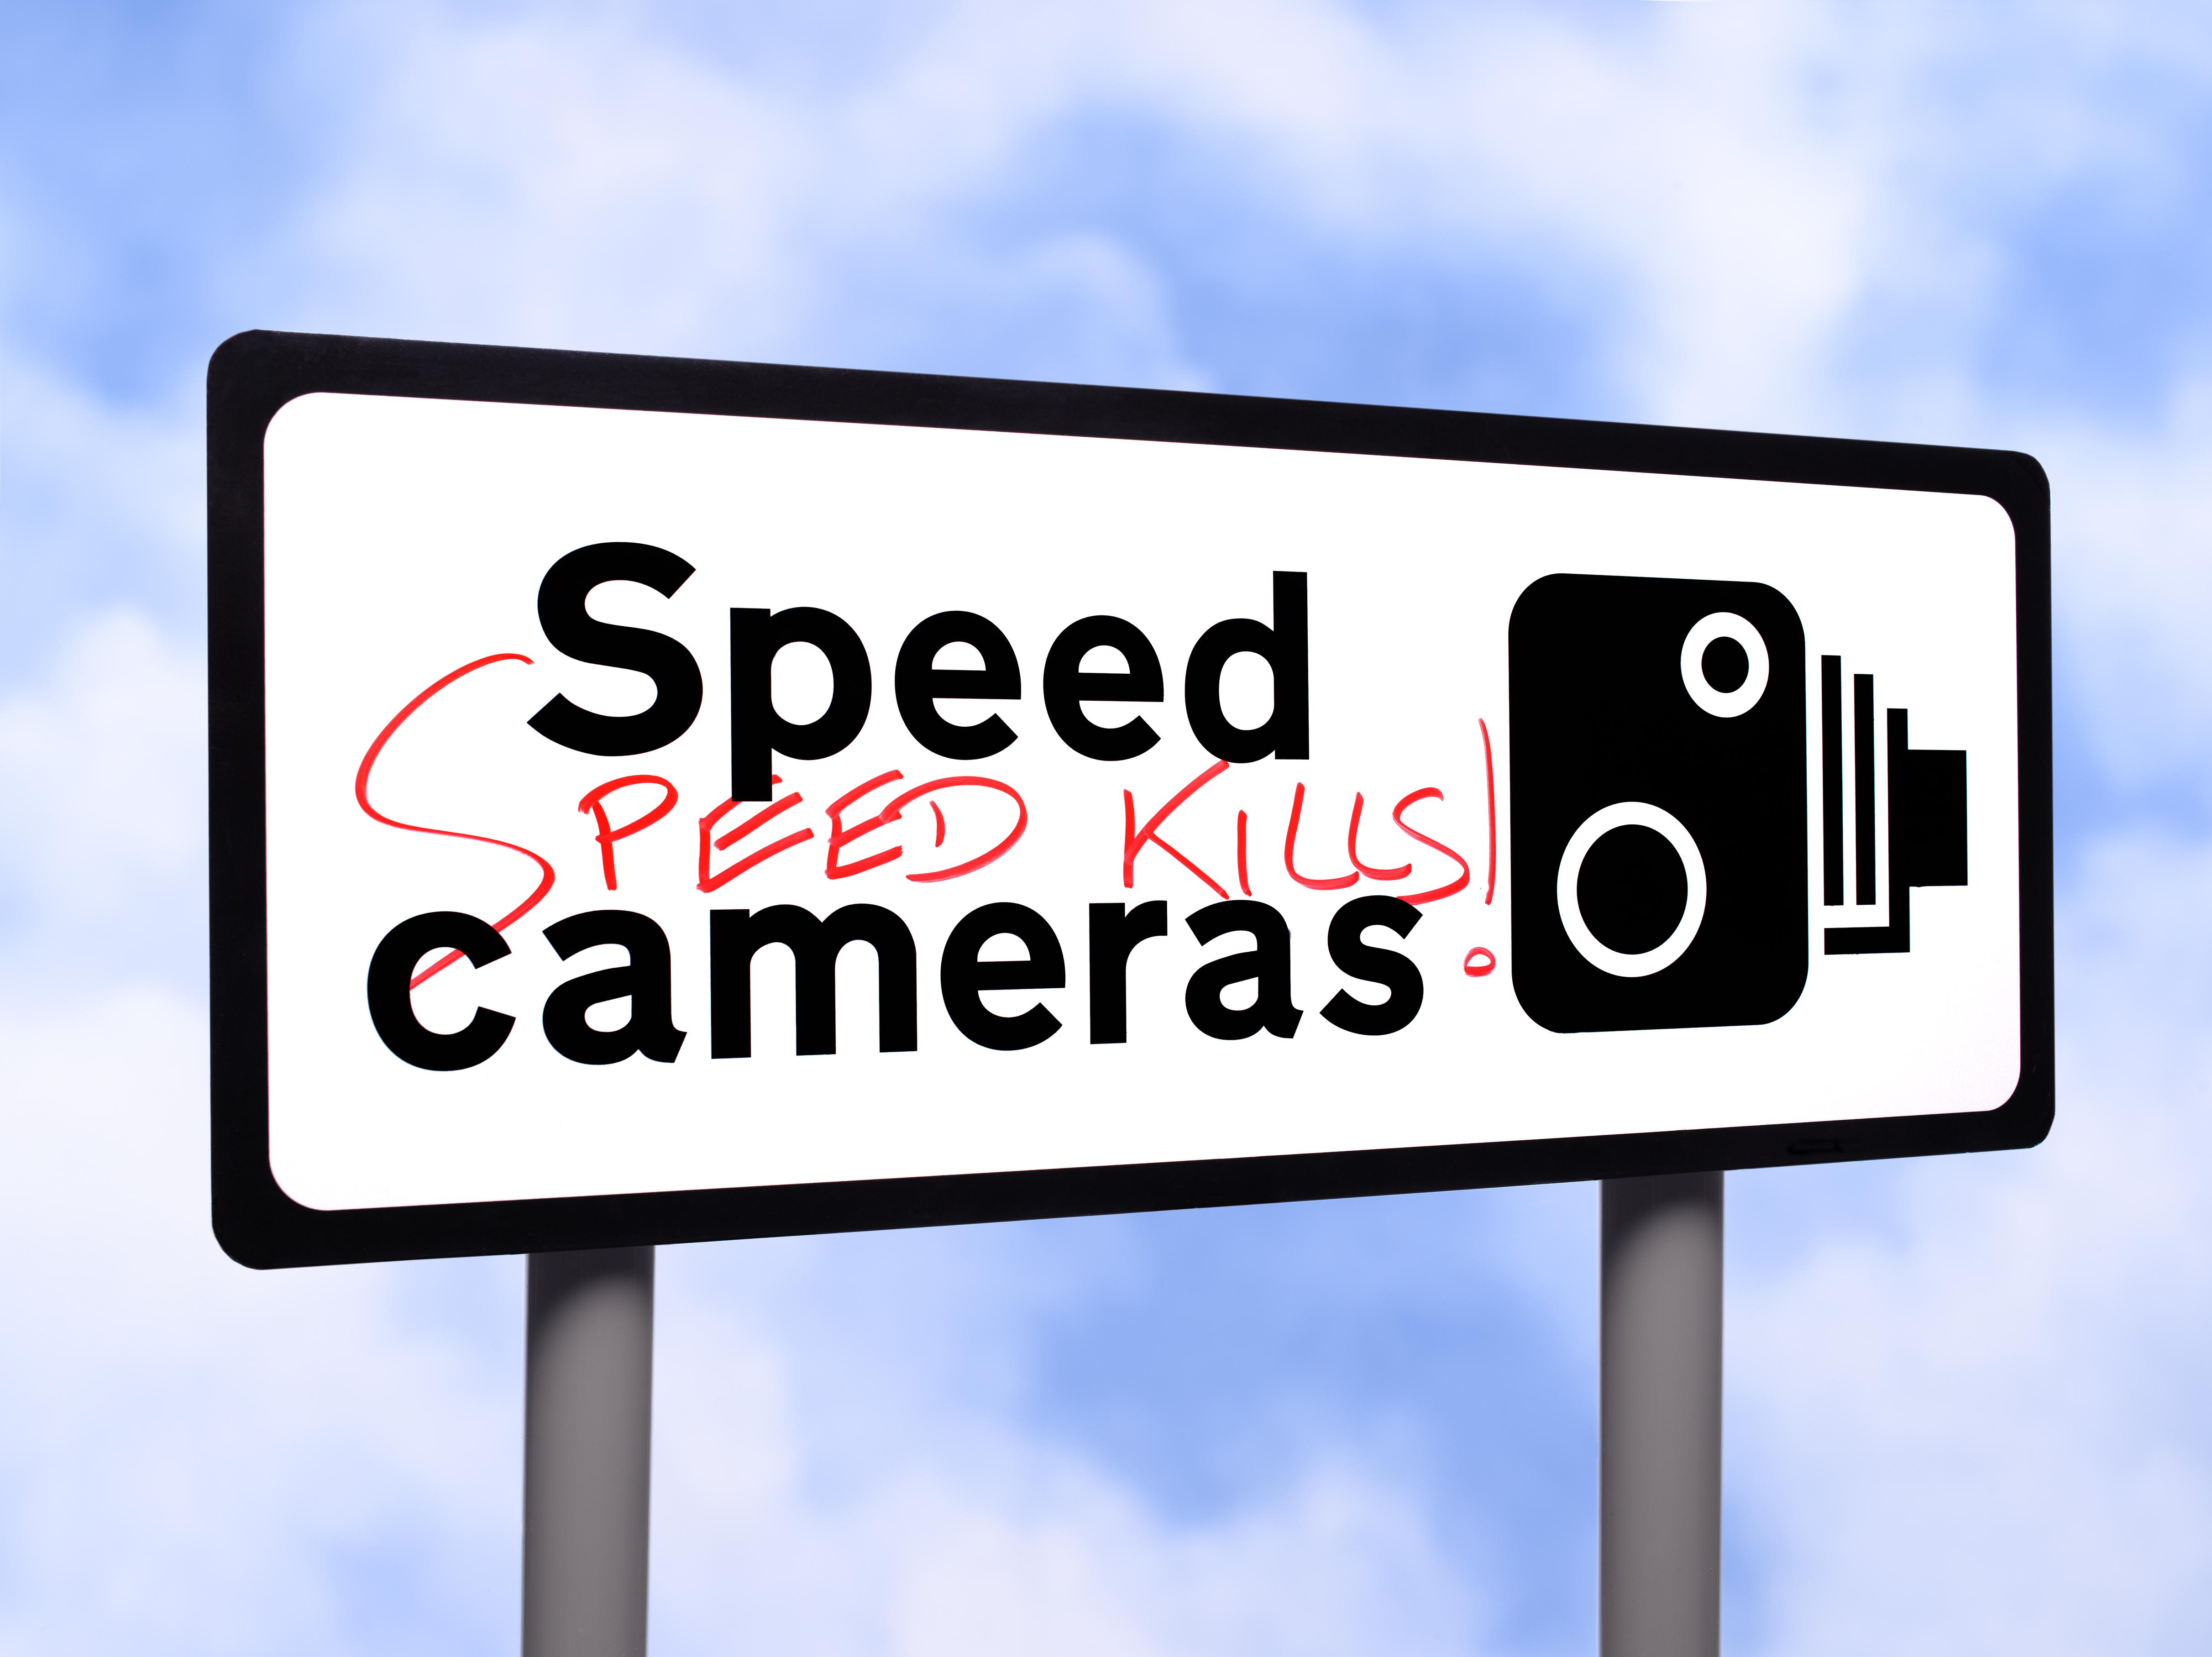 Speed camera sign with graffiti